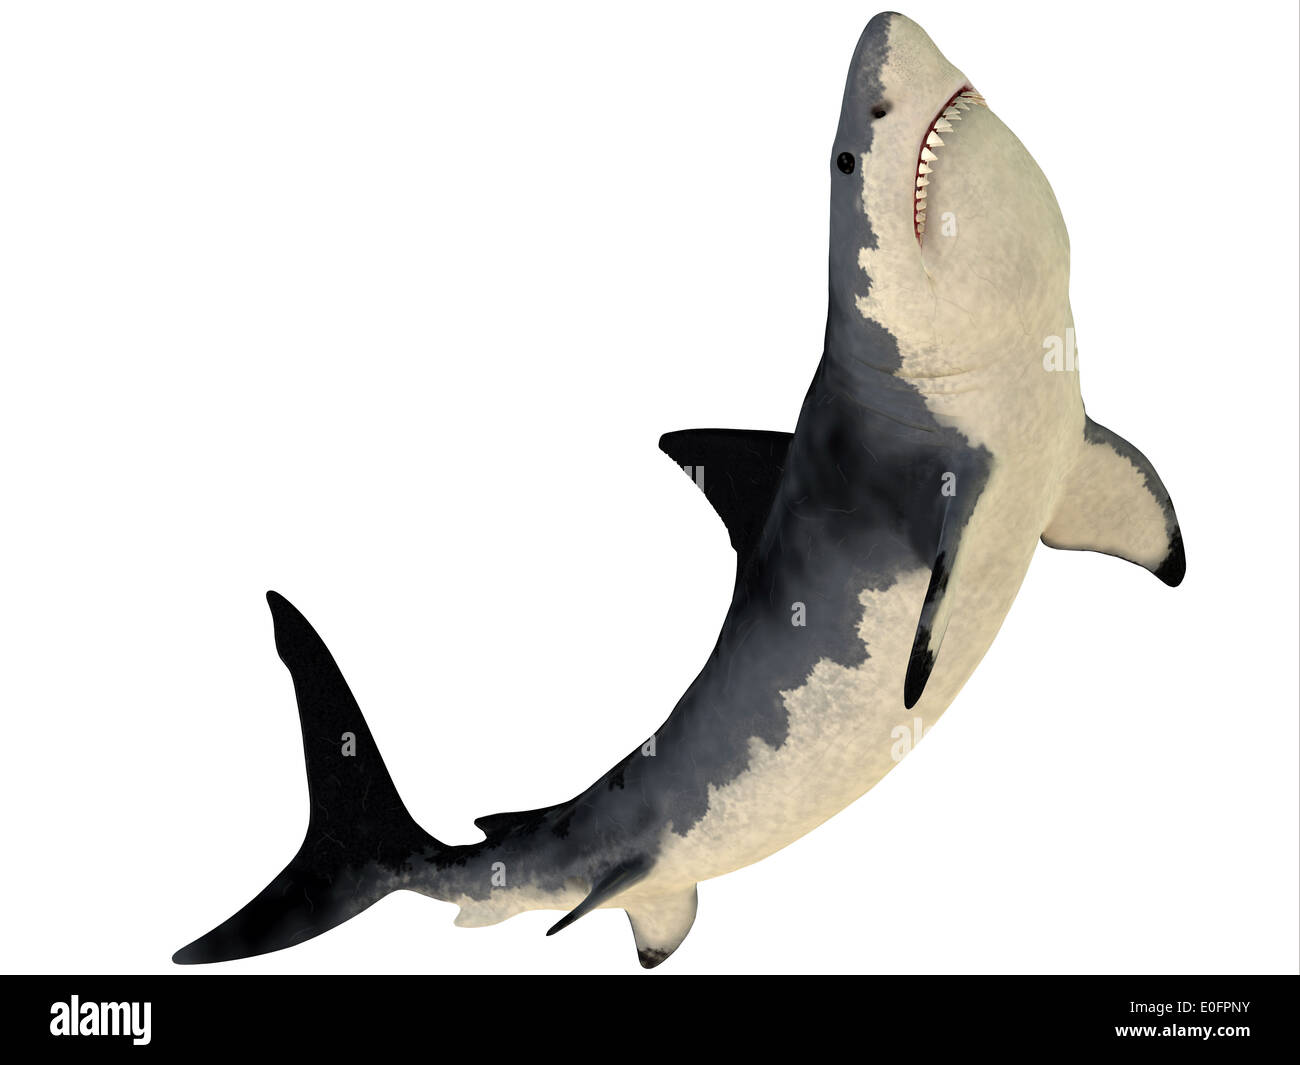 Megalodon is an extinct species of shark that grew to 18 meters or 59ft and lived in the Cenozoic Era. - Stock Image